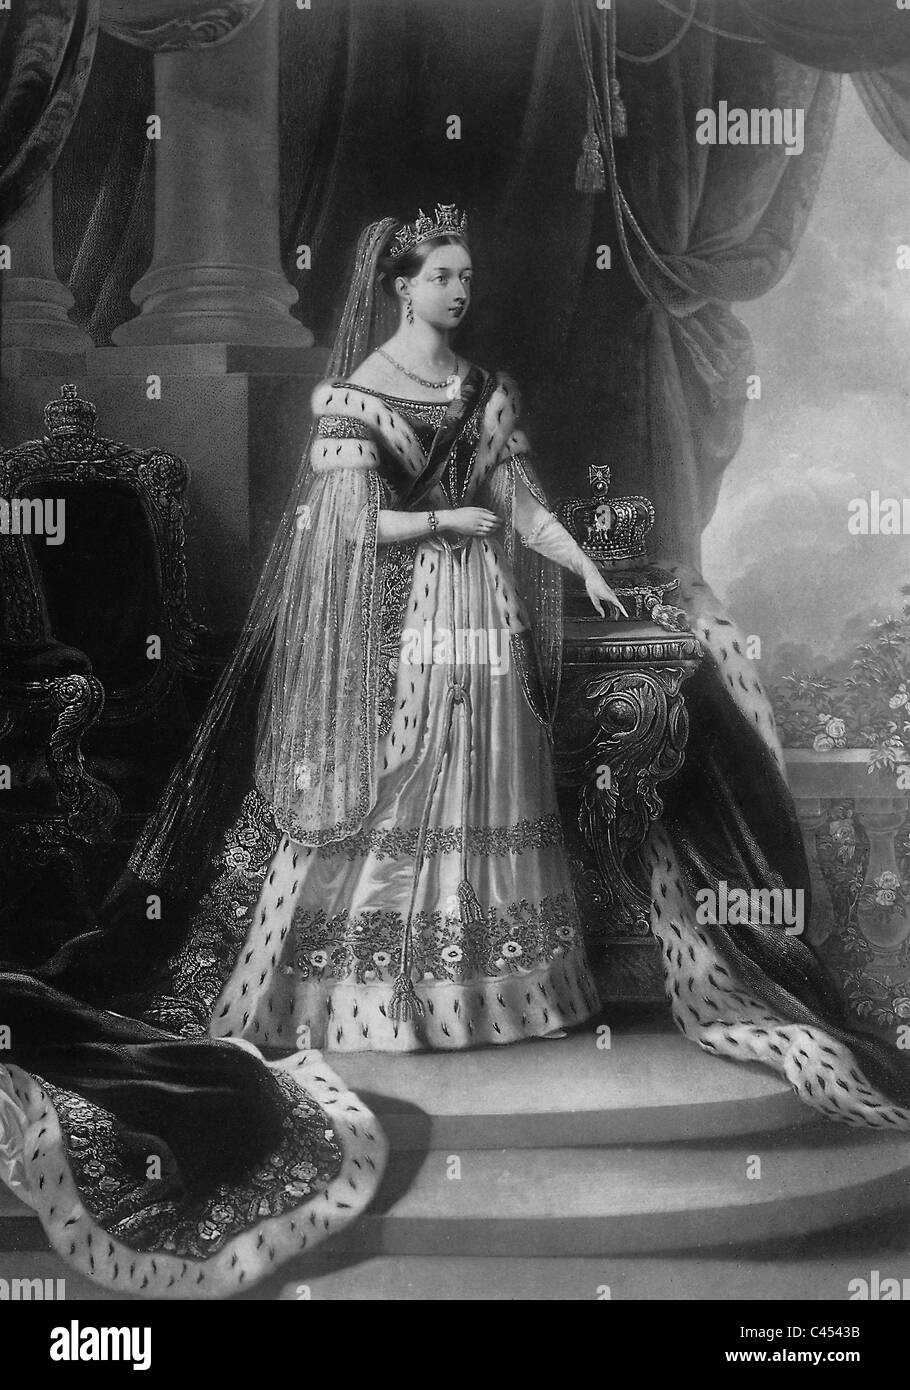 Queen Victoria of Great Britain in her coronation robes, 1838 - Stock Image